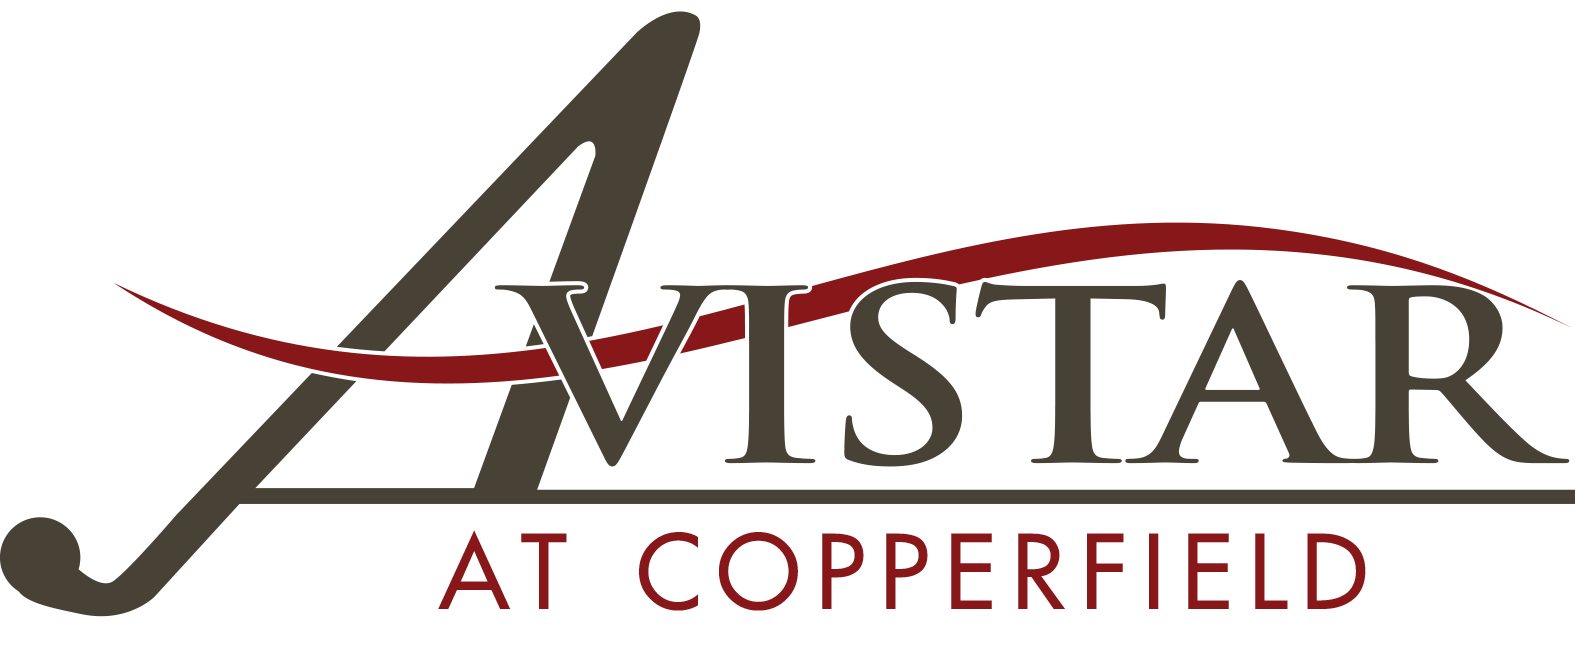 Avistar at Copperfield Logo